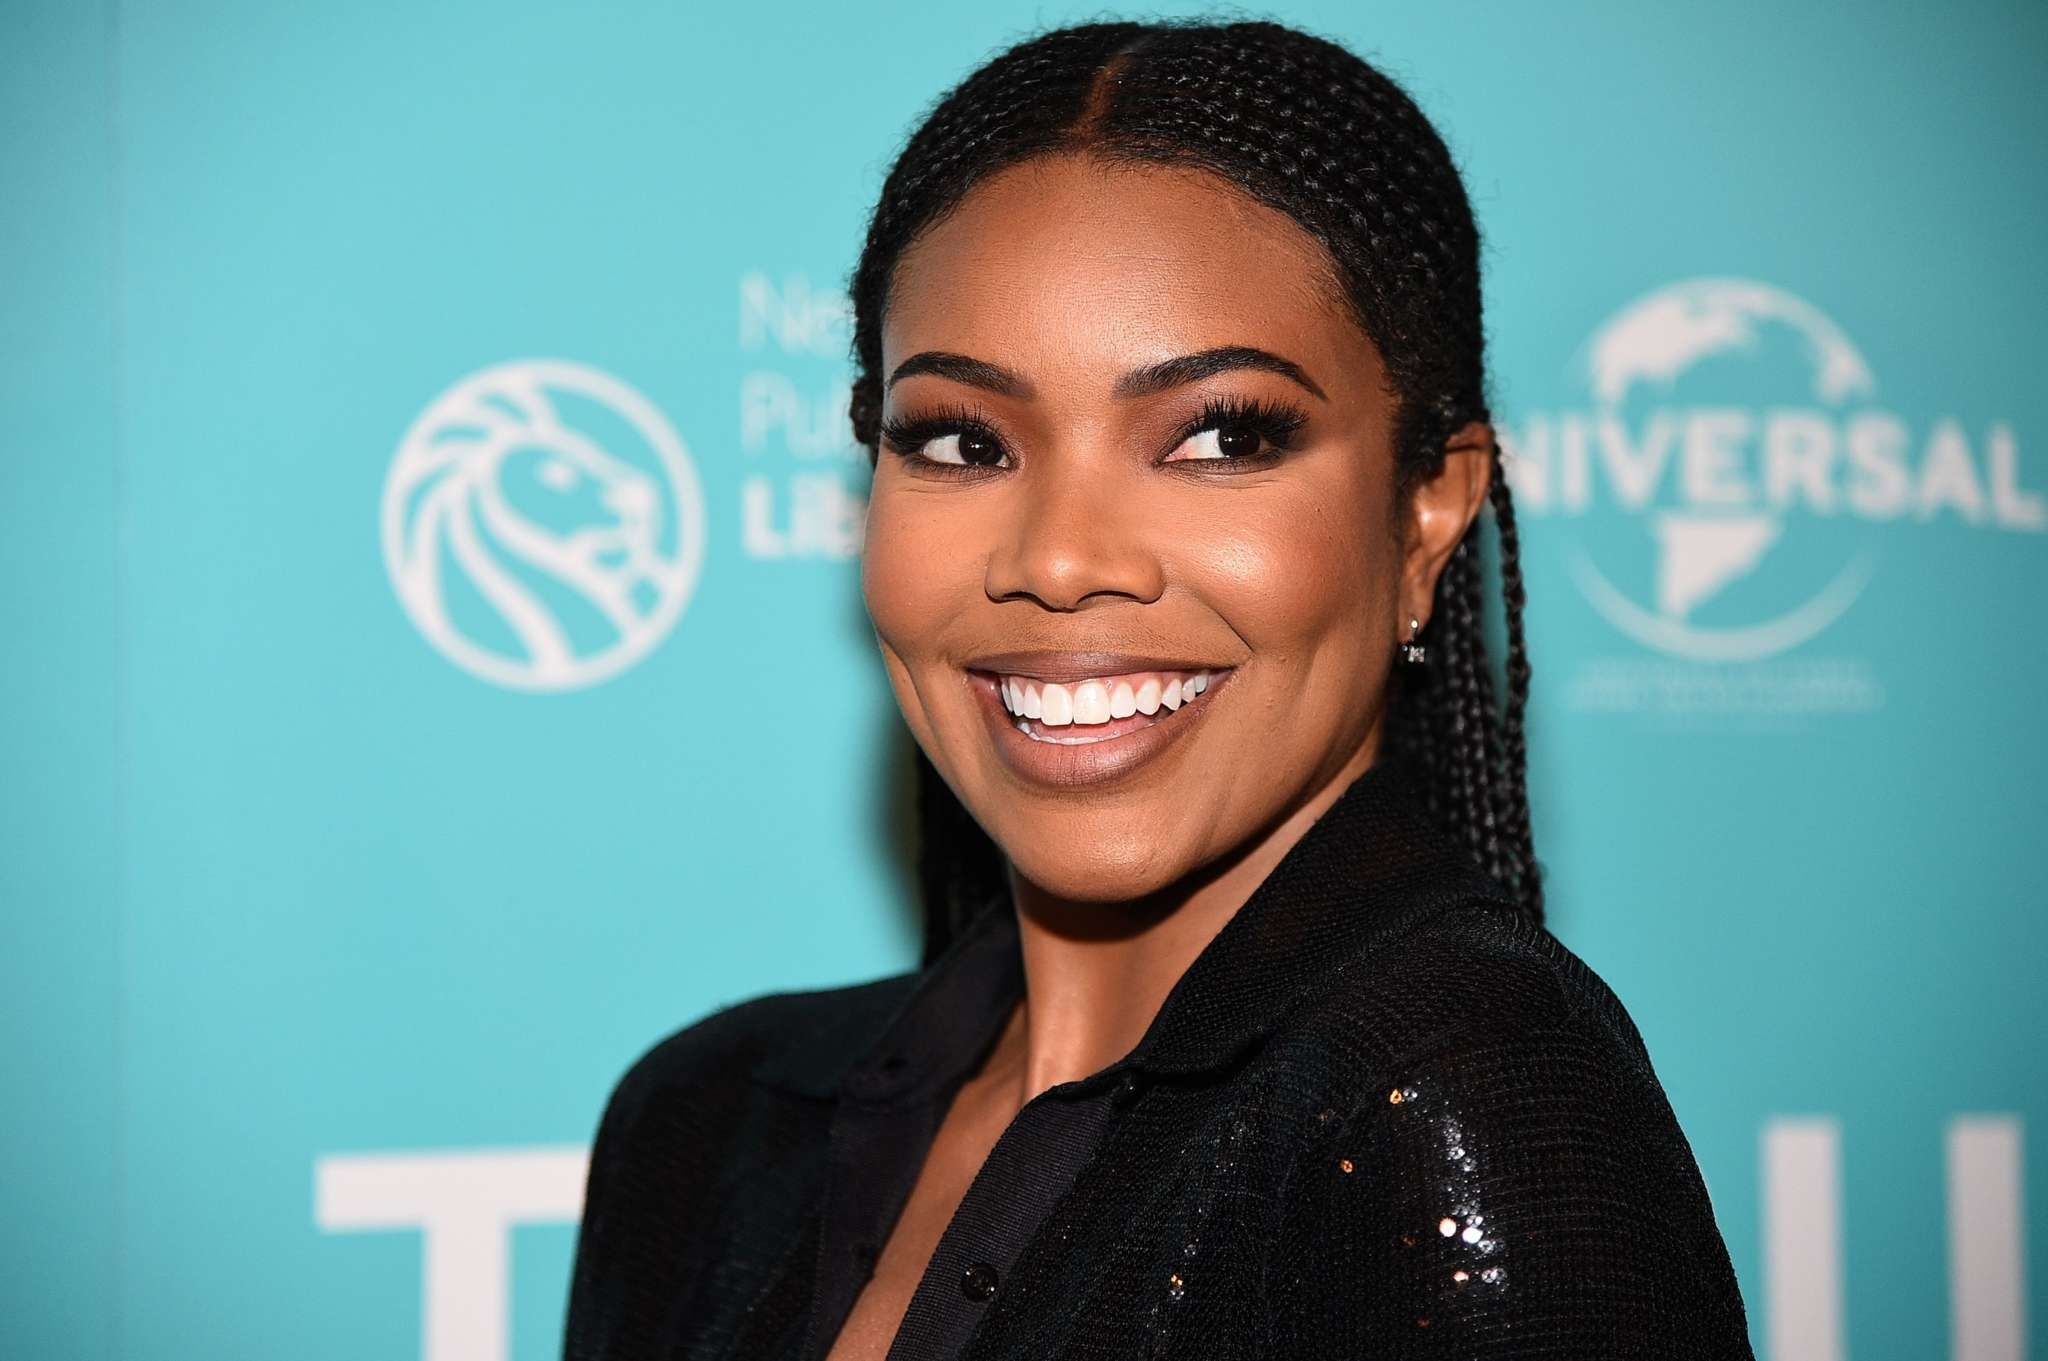 Gabrielle Union Praises Data Scientist Rebekah Jones